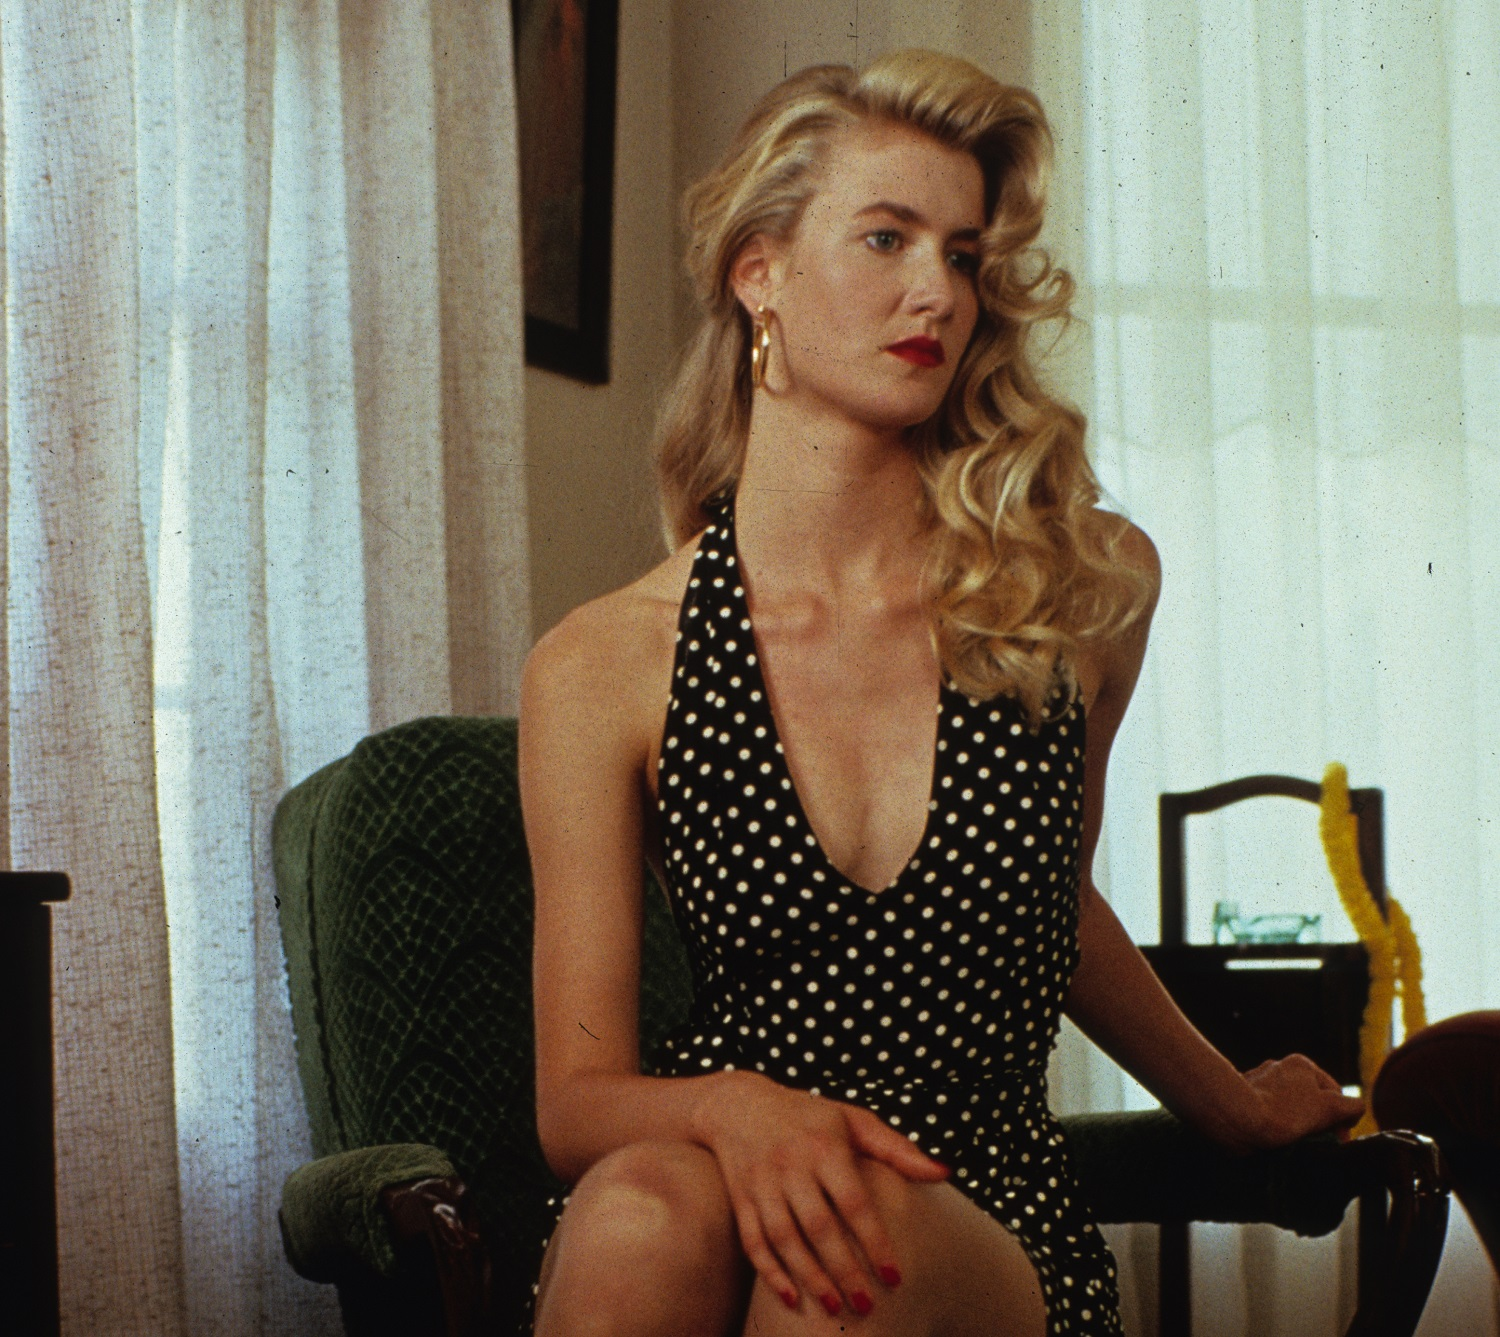 Still from Wild at Heart. Image courtesy of NBC Universal.